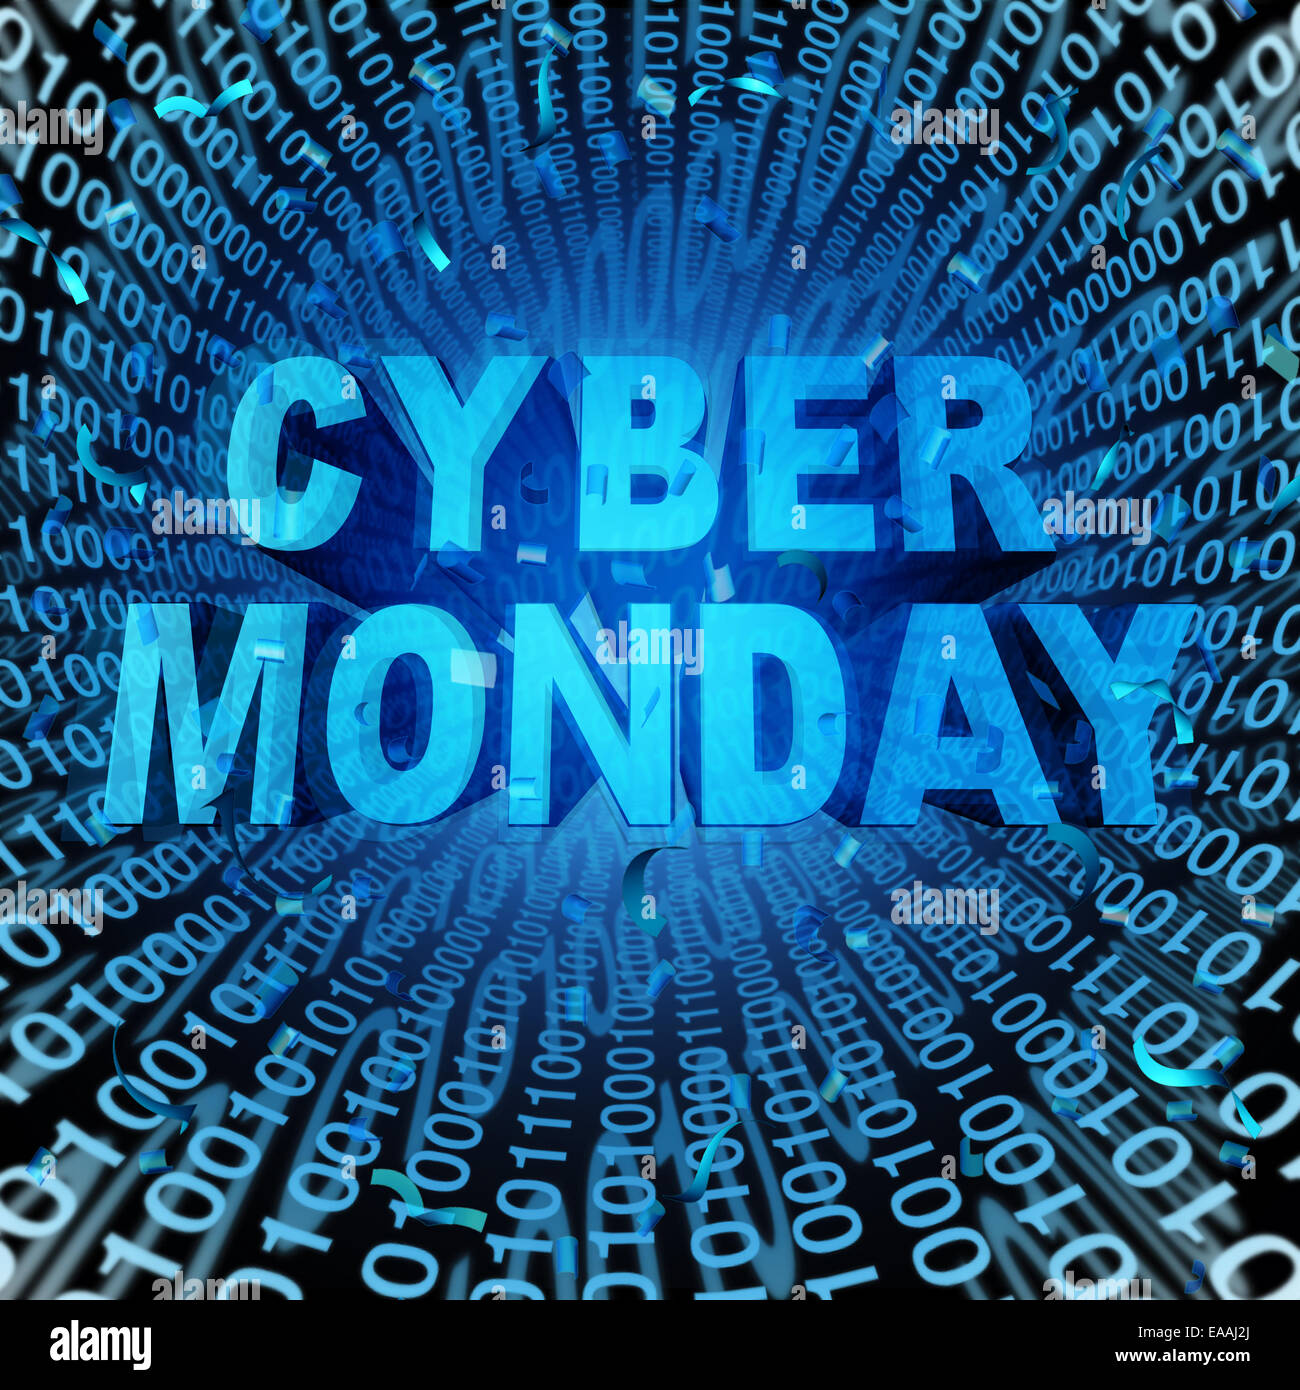 Cyber monday sale symbol and online sales concept as an internet holiday celebration for product discounts on websites. - Stock Image